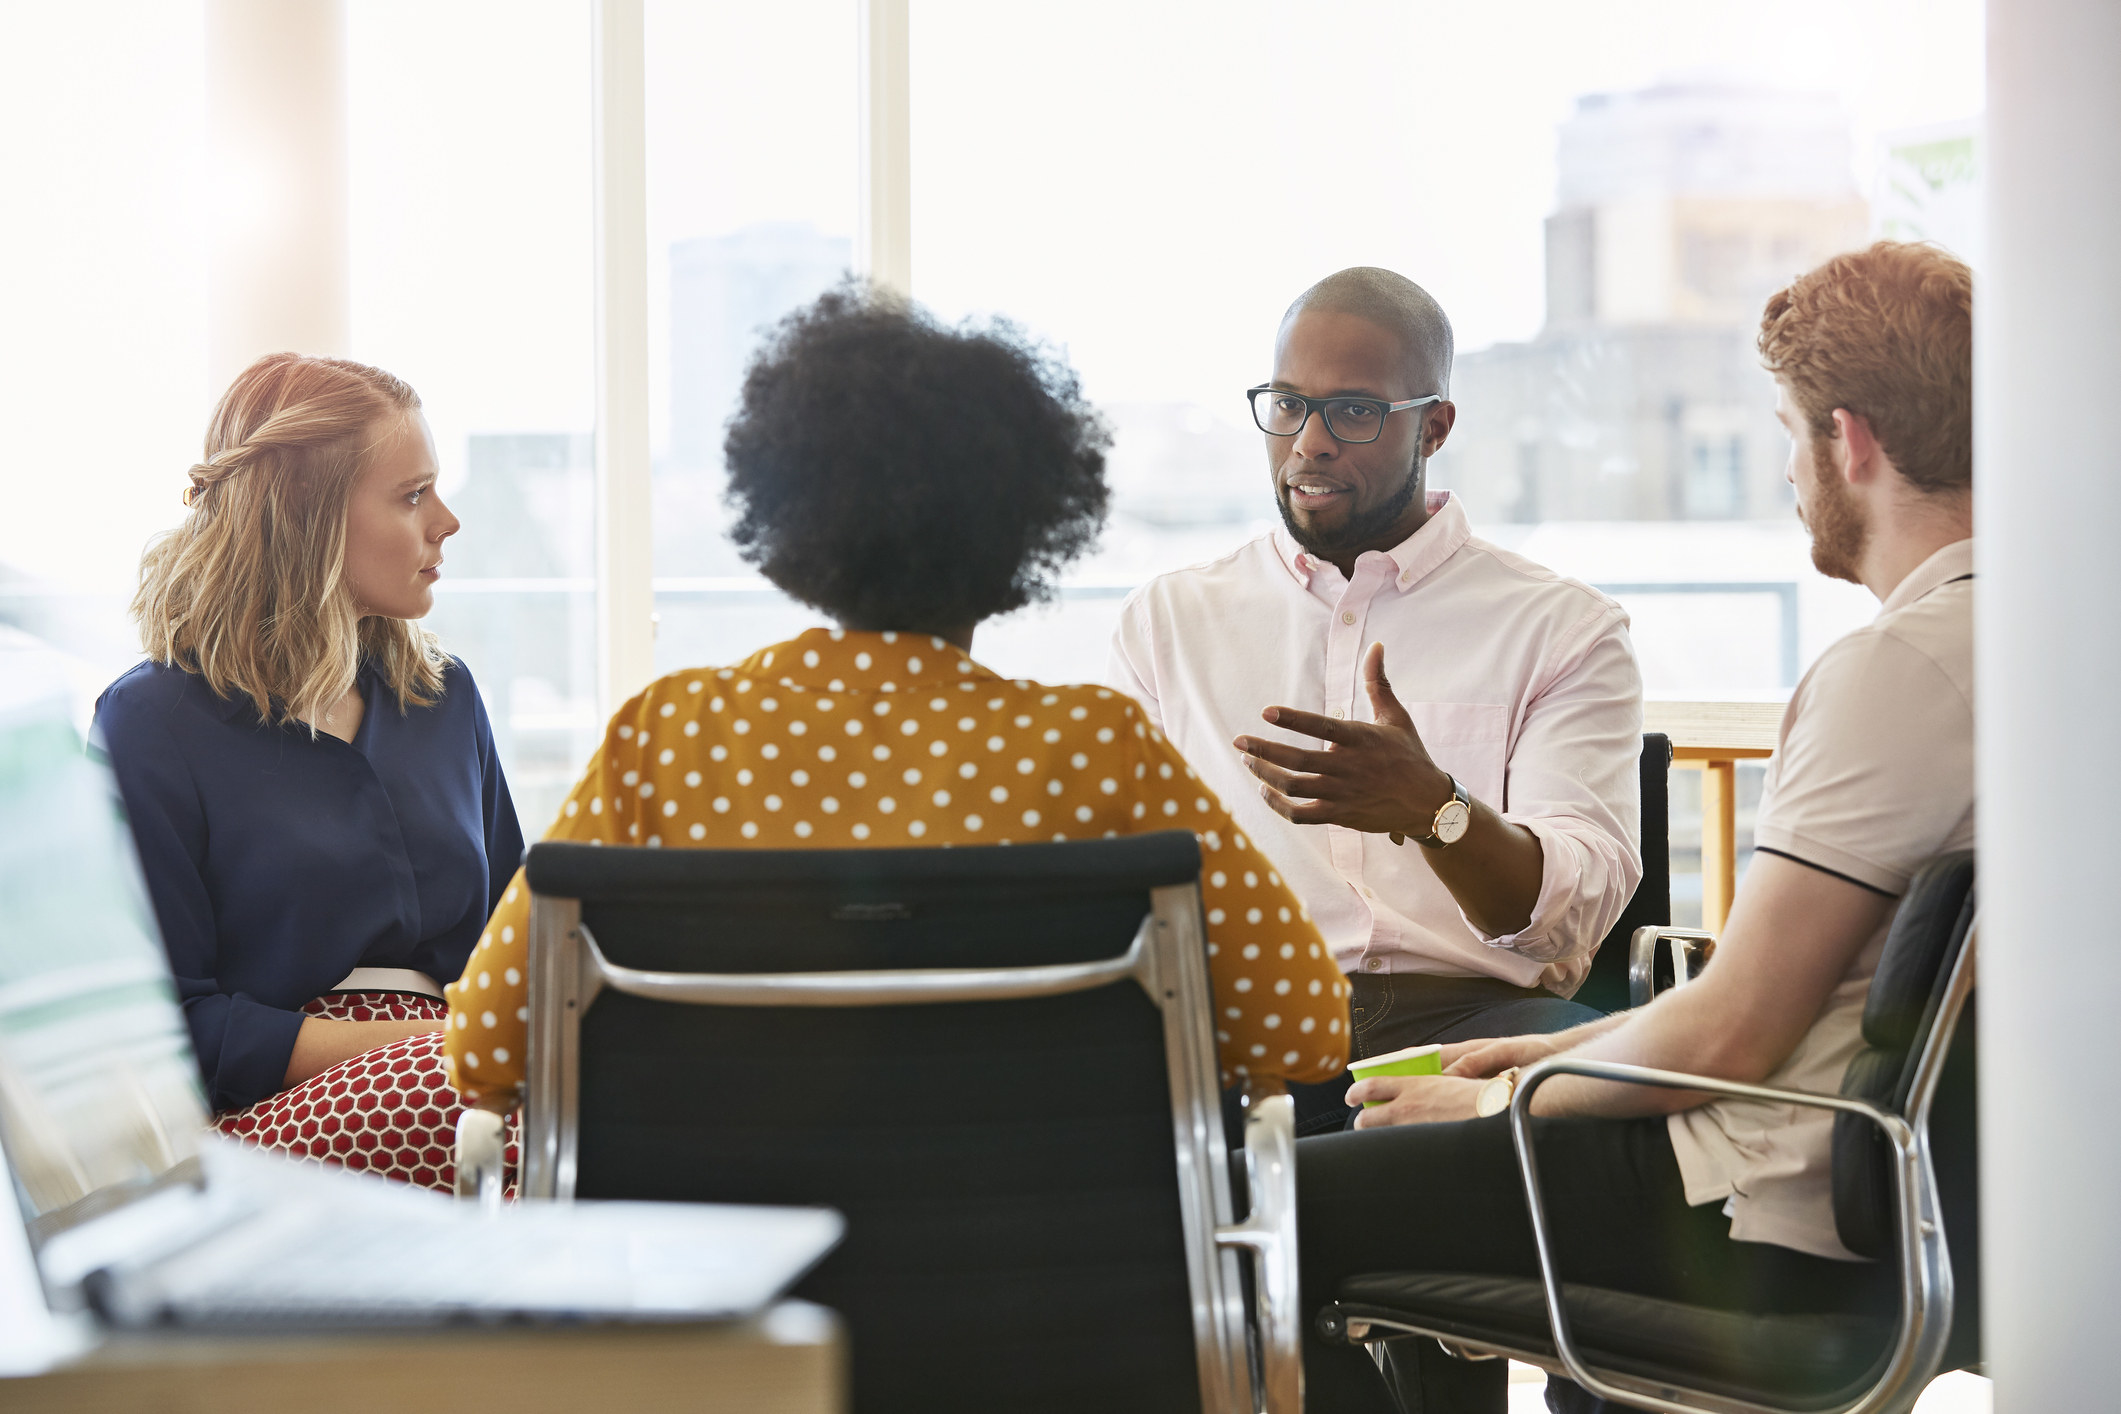 Four people having a conversation in an office